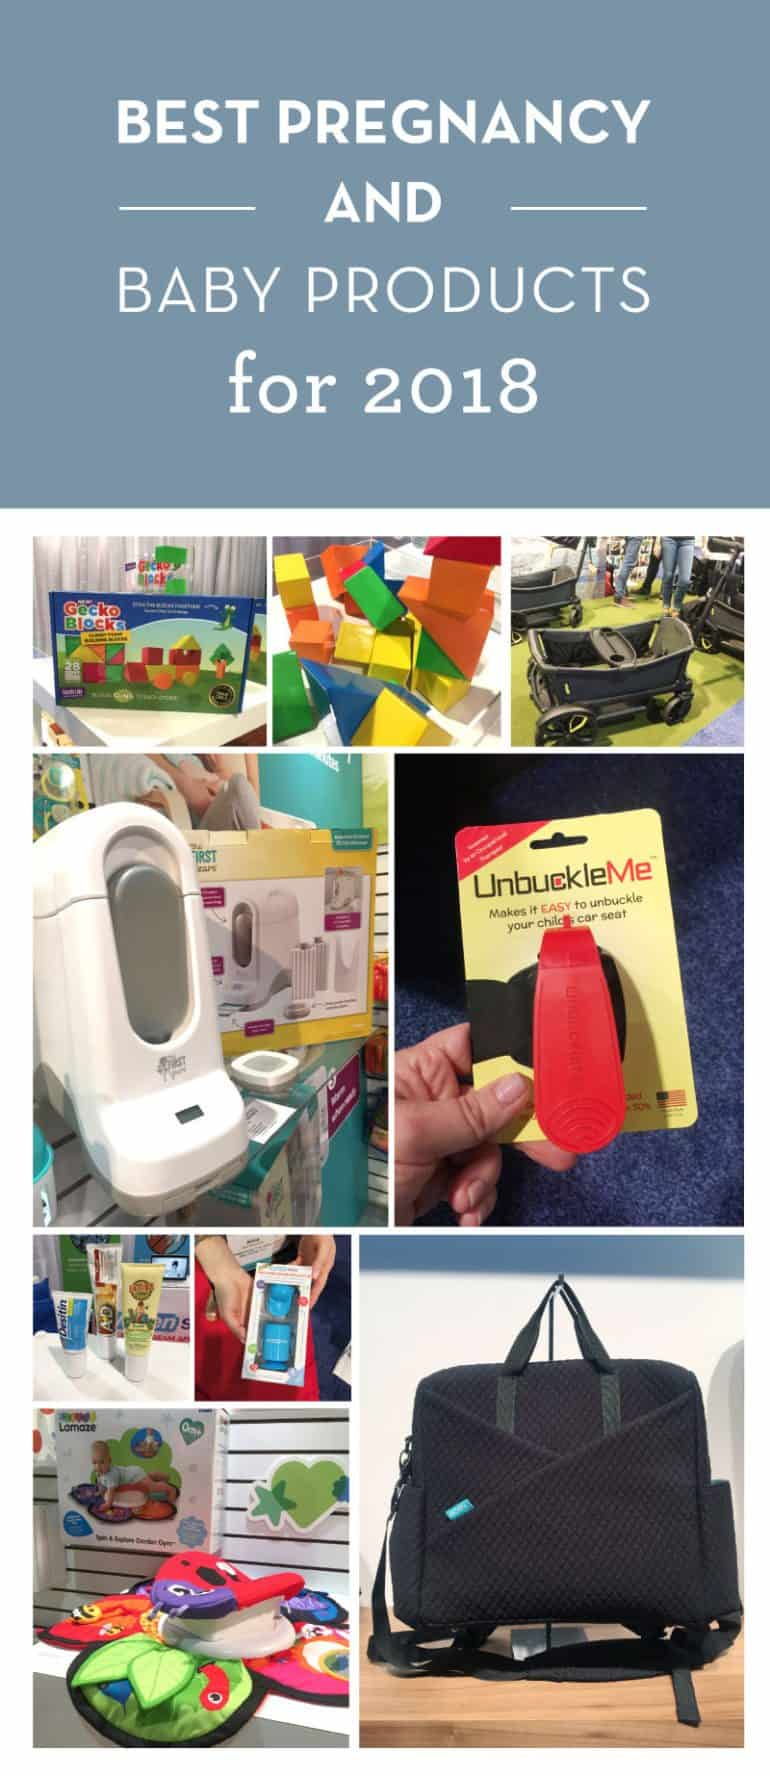 A sneak peek at the best baby & pregnancy products for 2018. From simple monitors to easier tummy time, some of this gear will blow your mind.